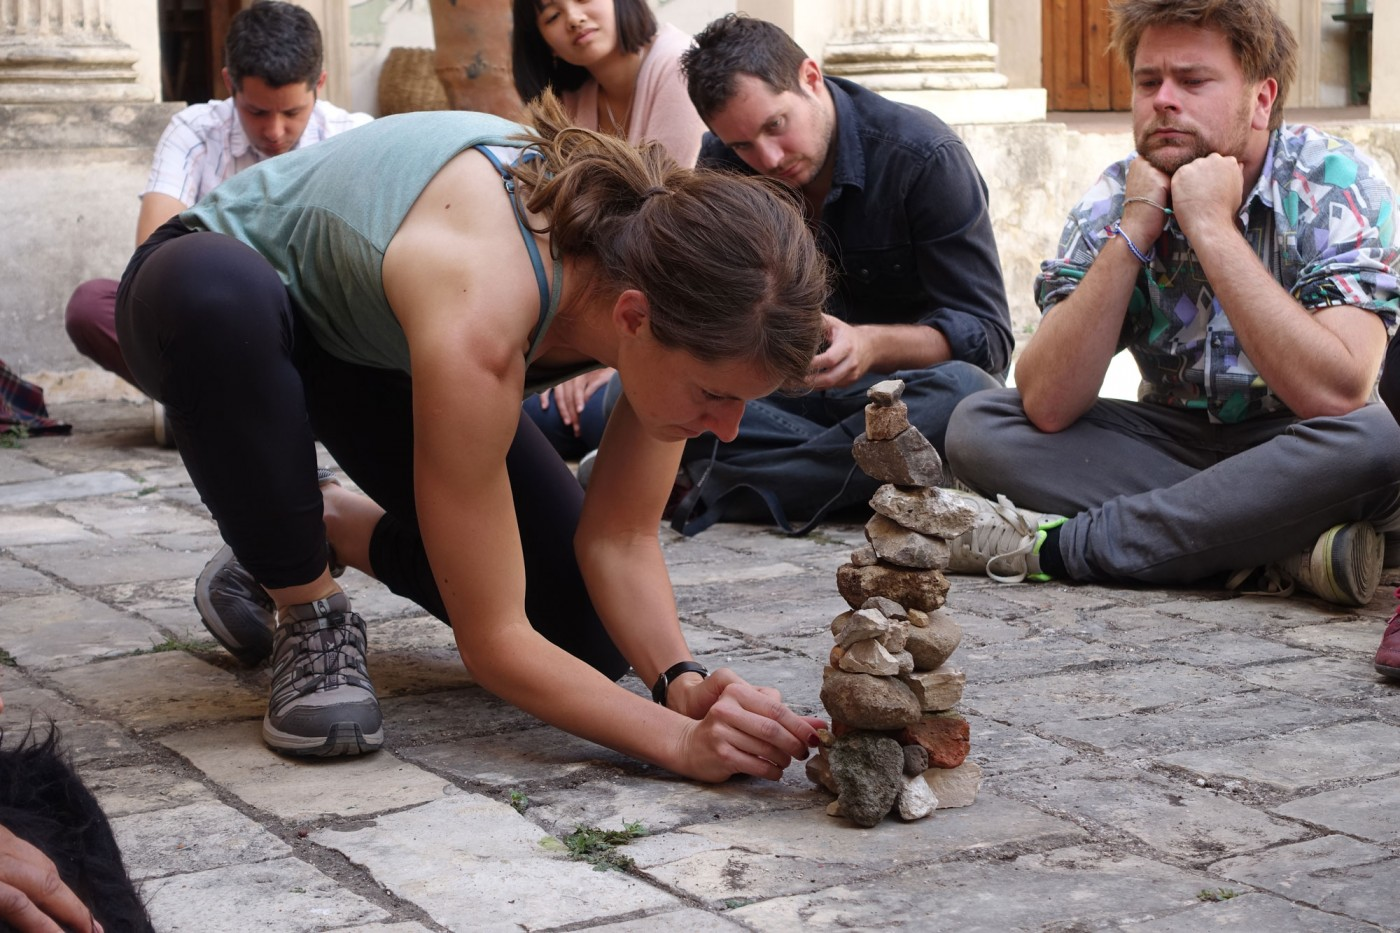 Lacie places her stone while others observe (nervously). Photo by Diana Taylor.